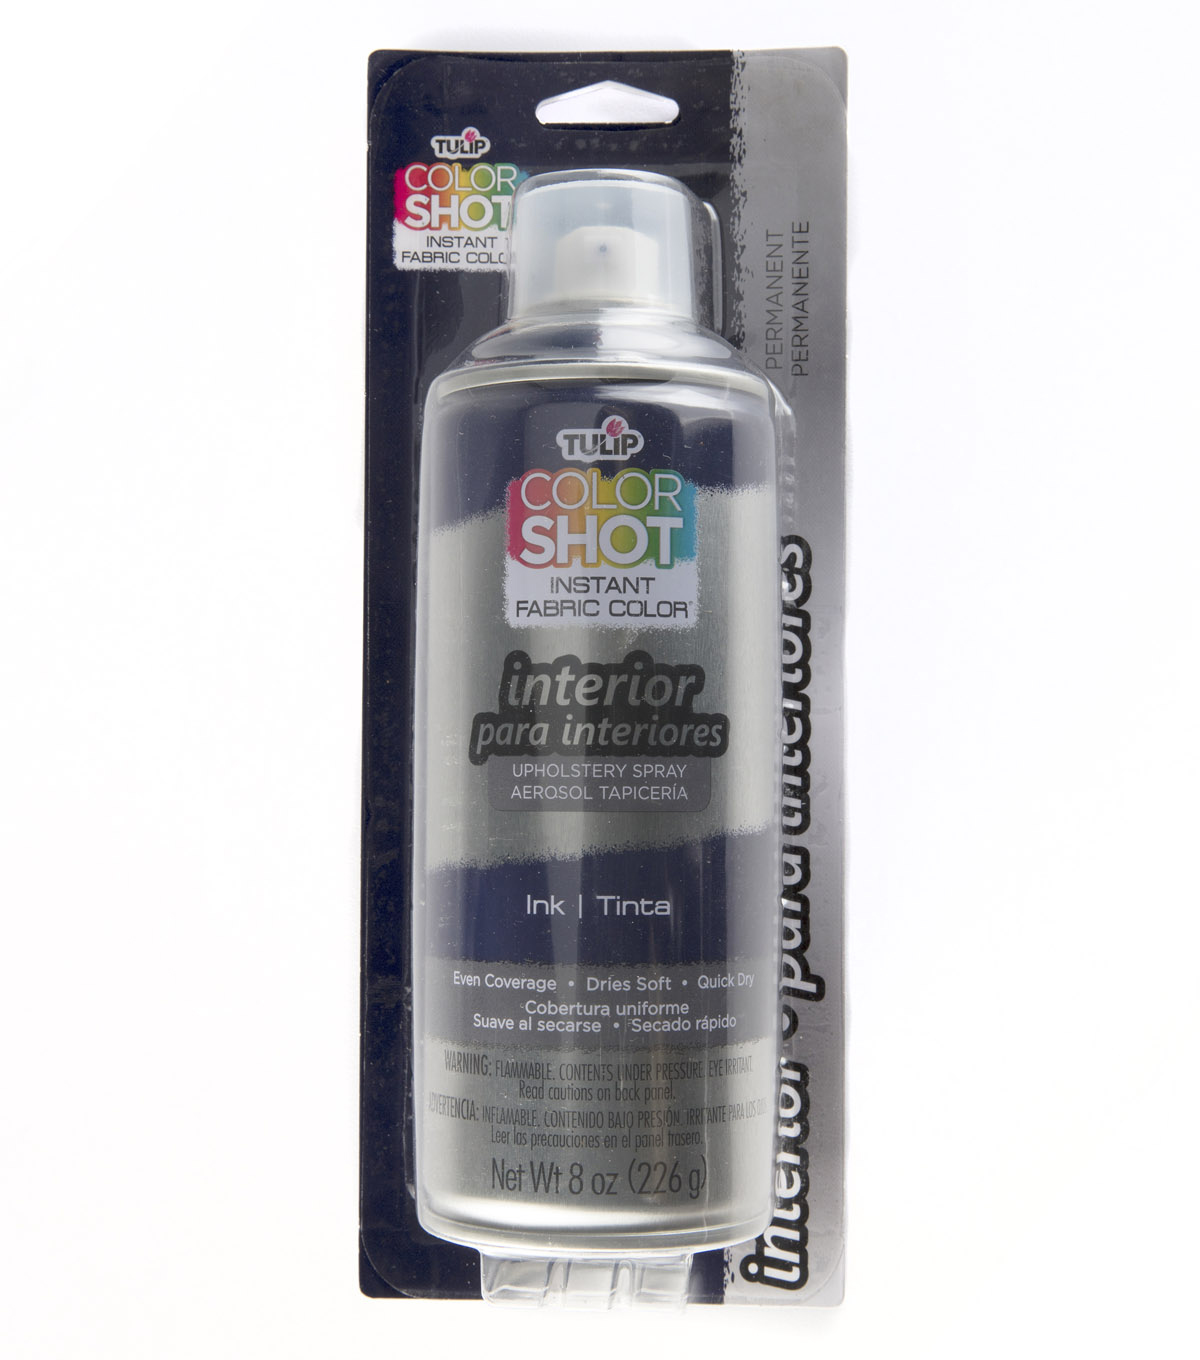 Tulip ColorShot 8oz Indoor Upholstery Spray, Ink